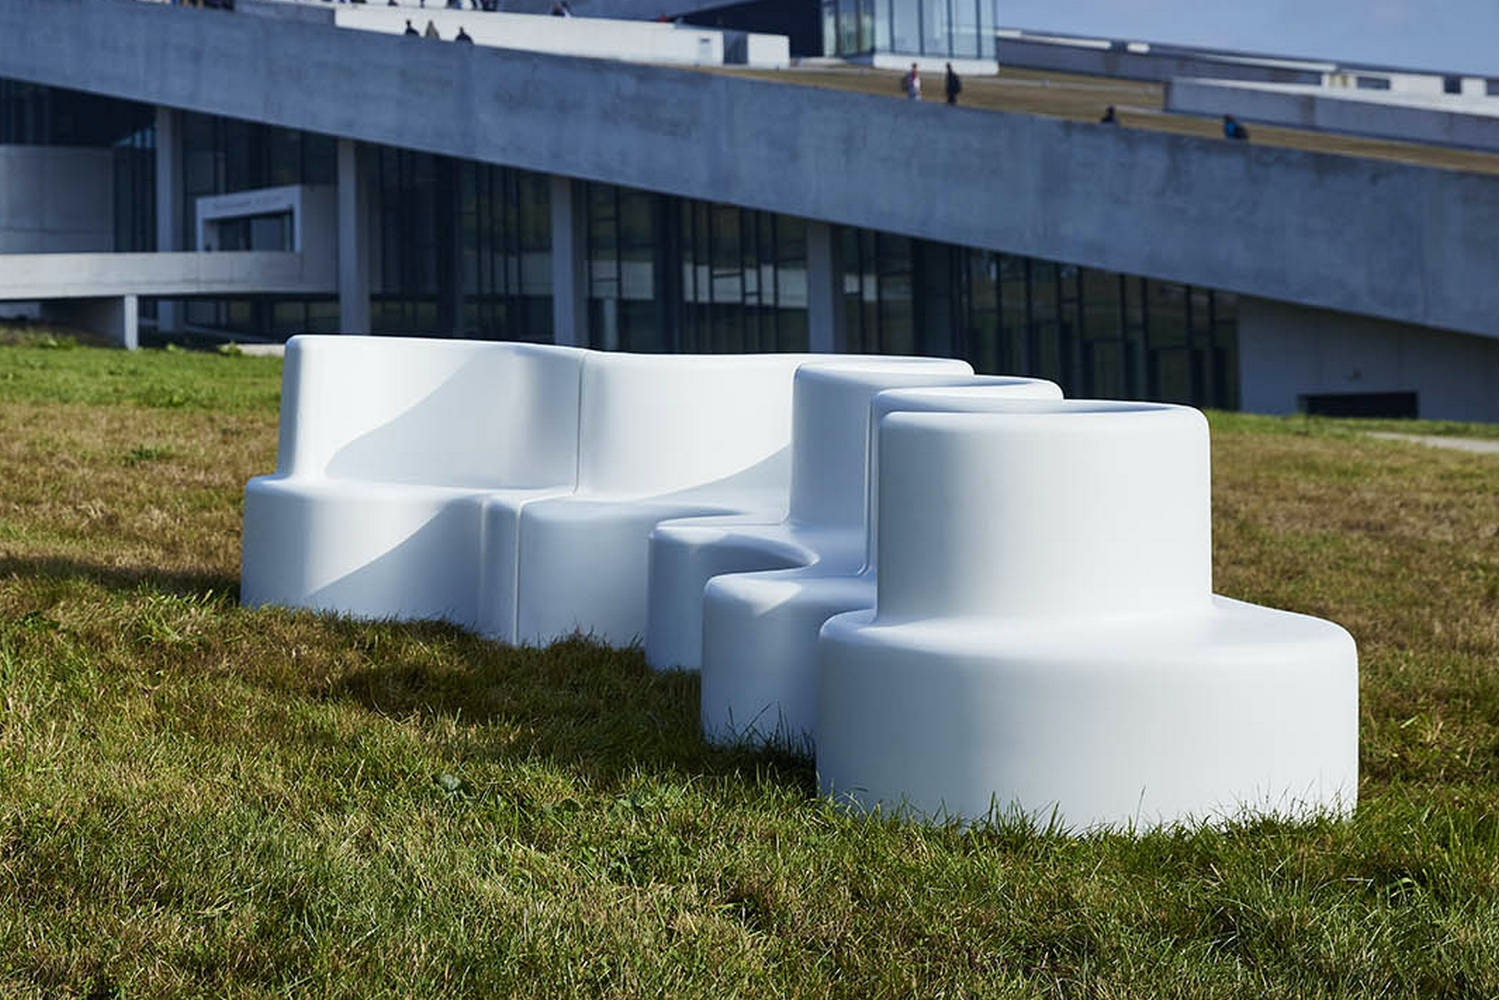 Cloverleaf In- and Outdoor Sofa by Verner Panton for Verpan